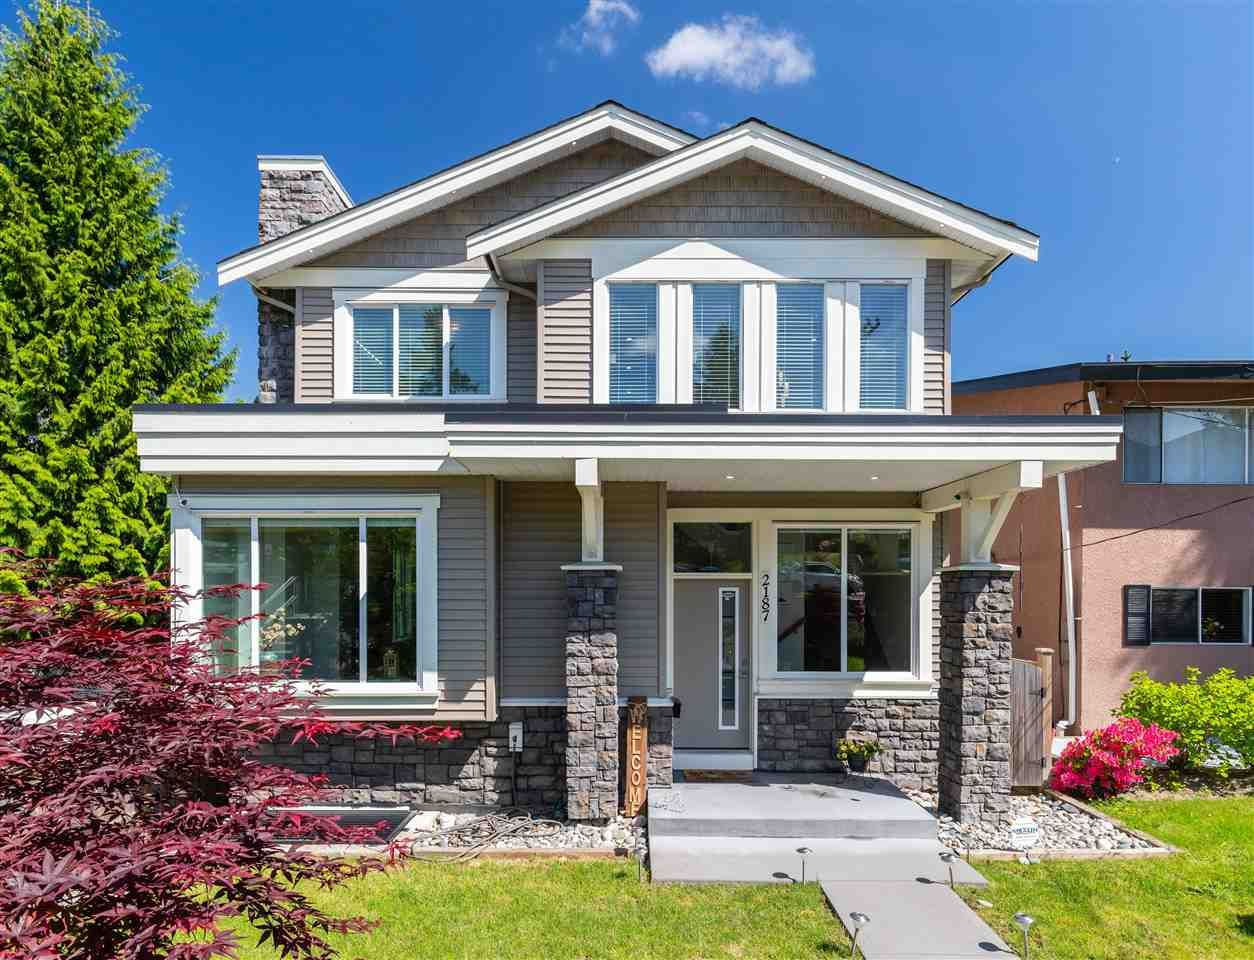 Main Photo: 2187 PITT RIVER Road in Port Coquitlam: Central Pt Coquitlam House for sale : MLS®# R2584937